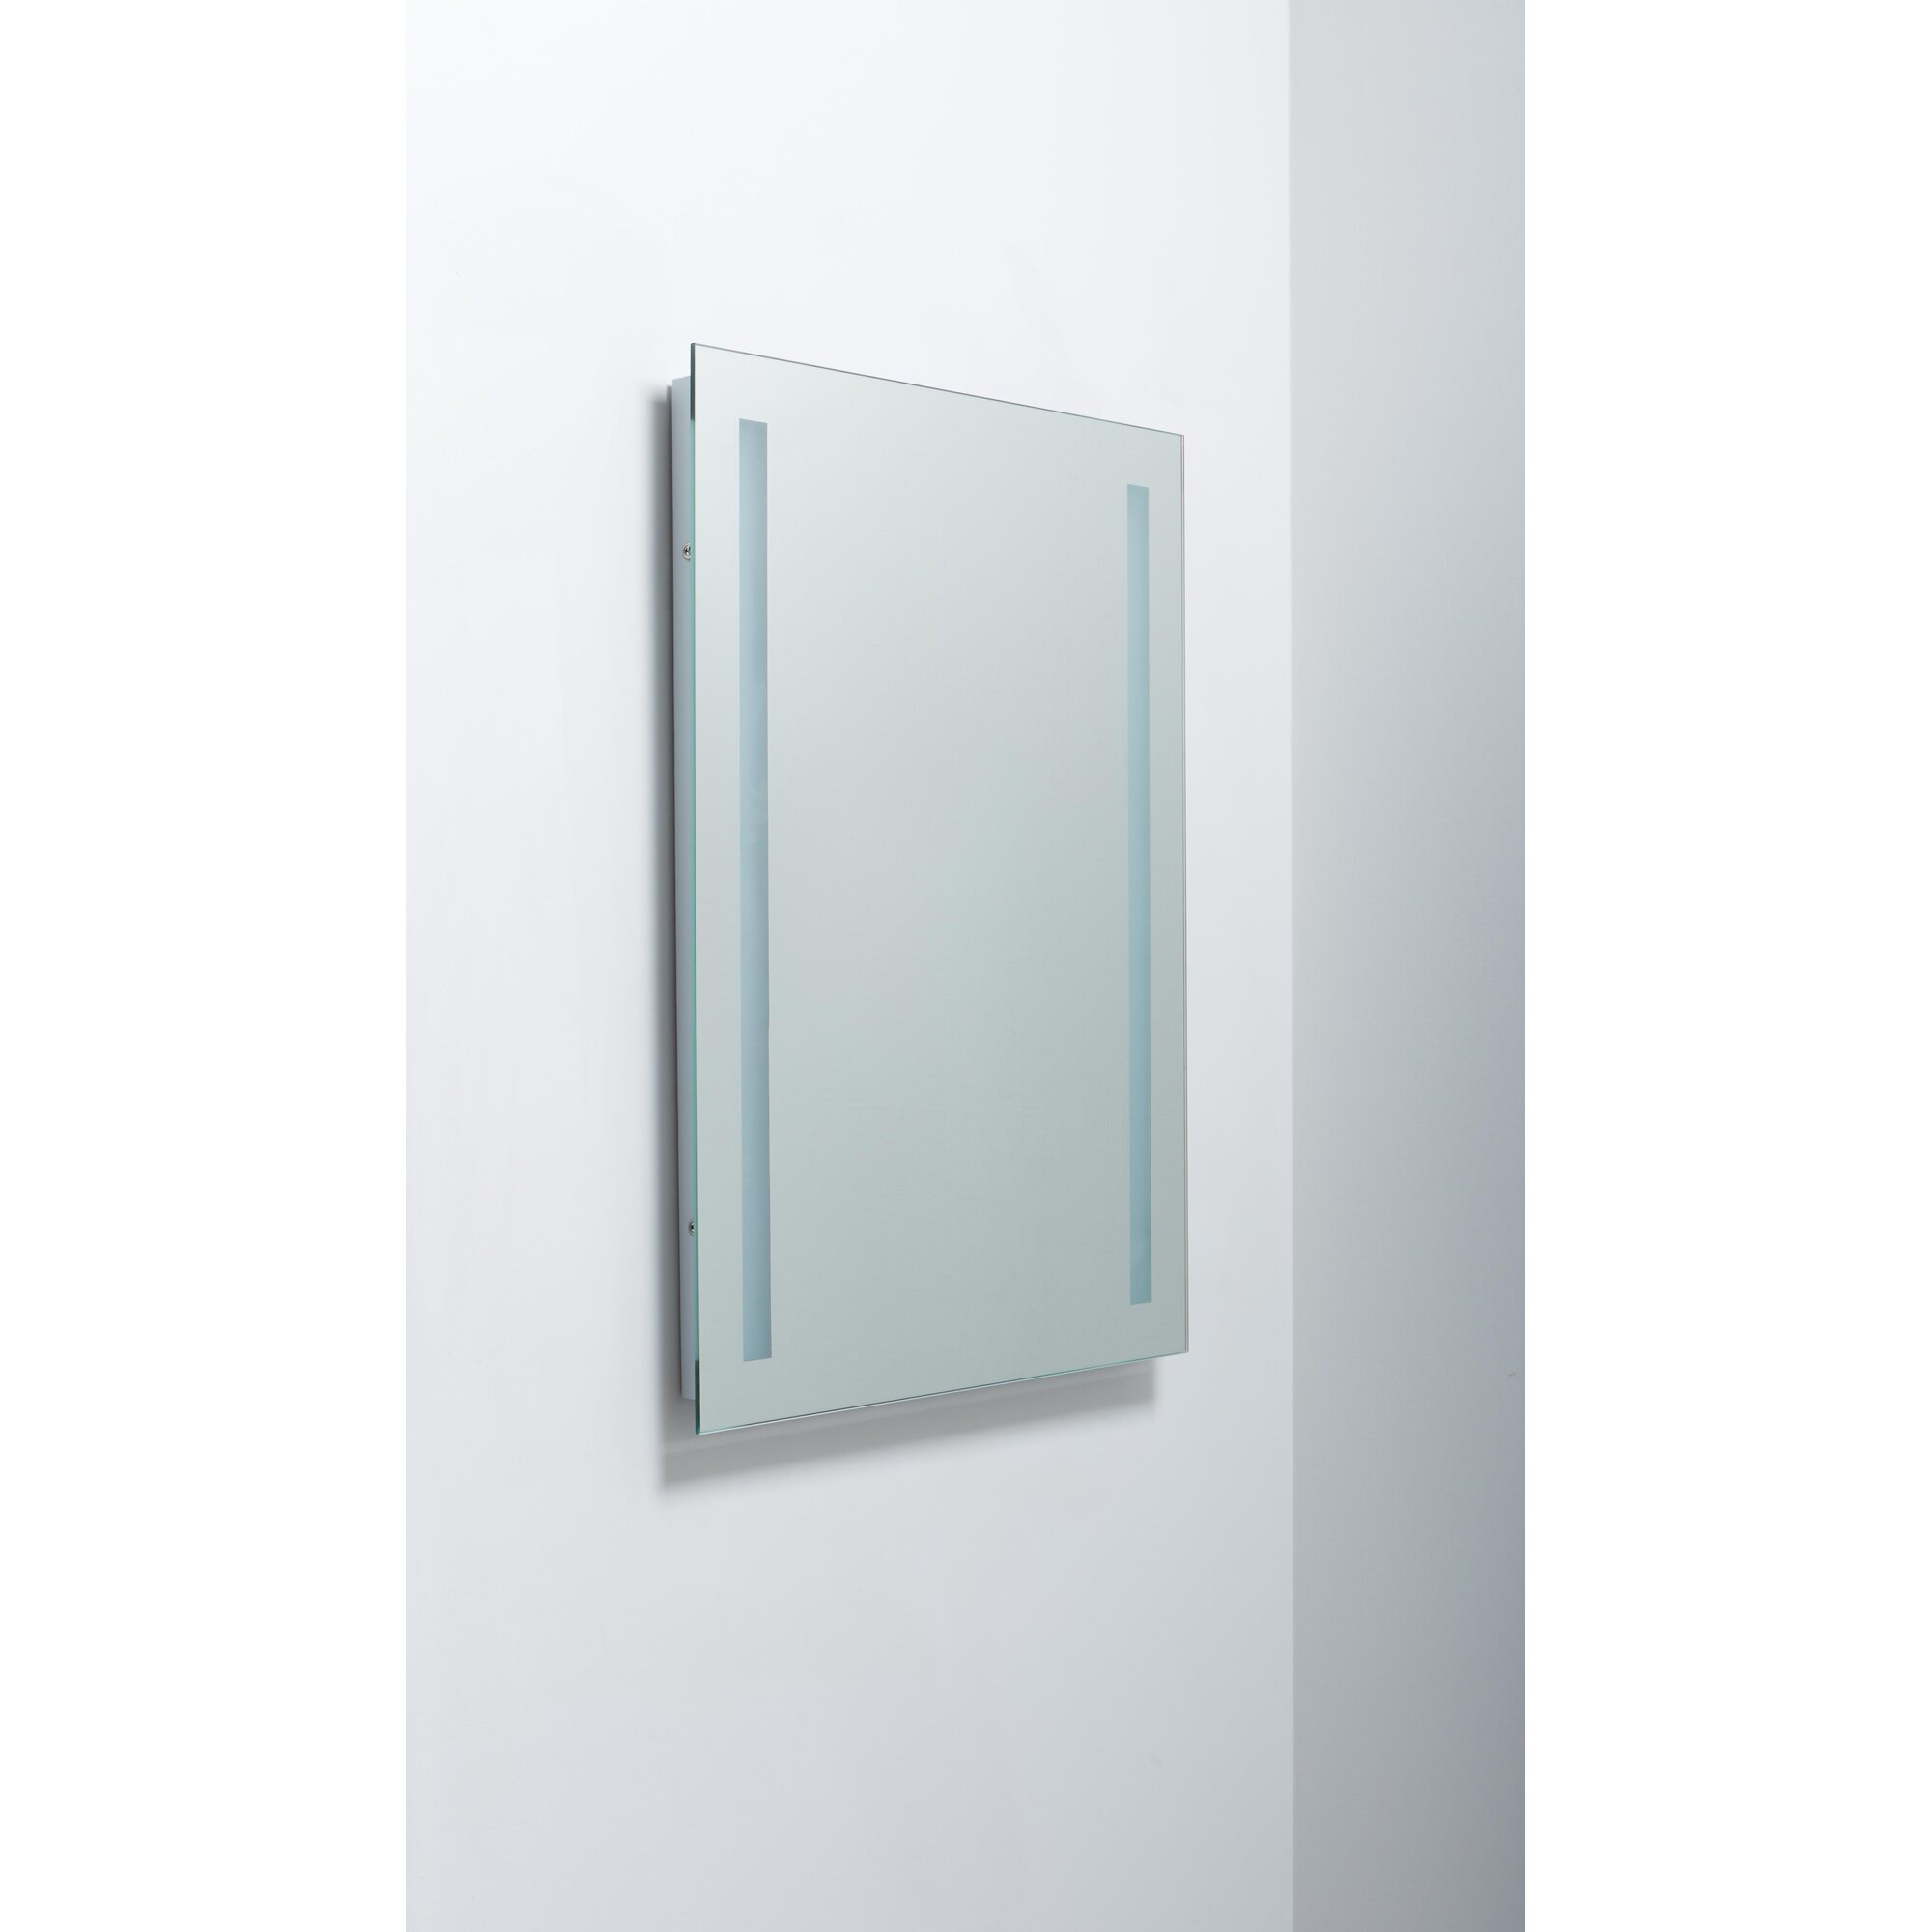 lighted and illuminated beautiful wall mirror - Erias Home Designs